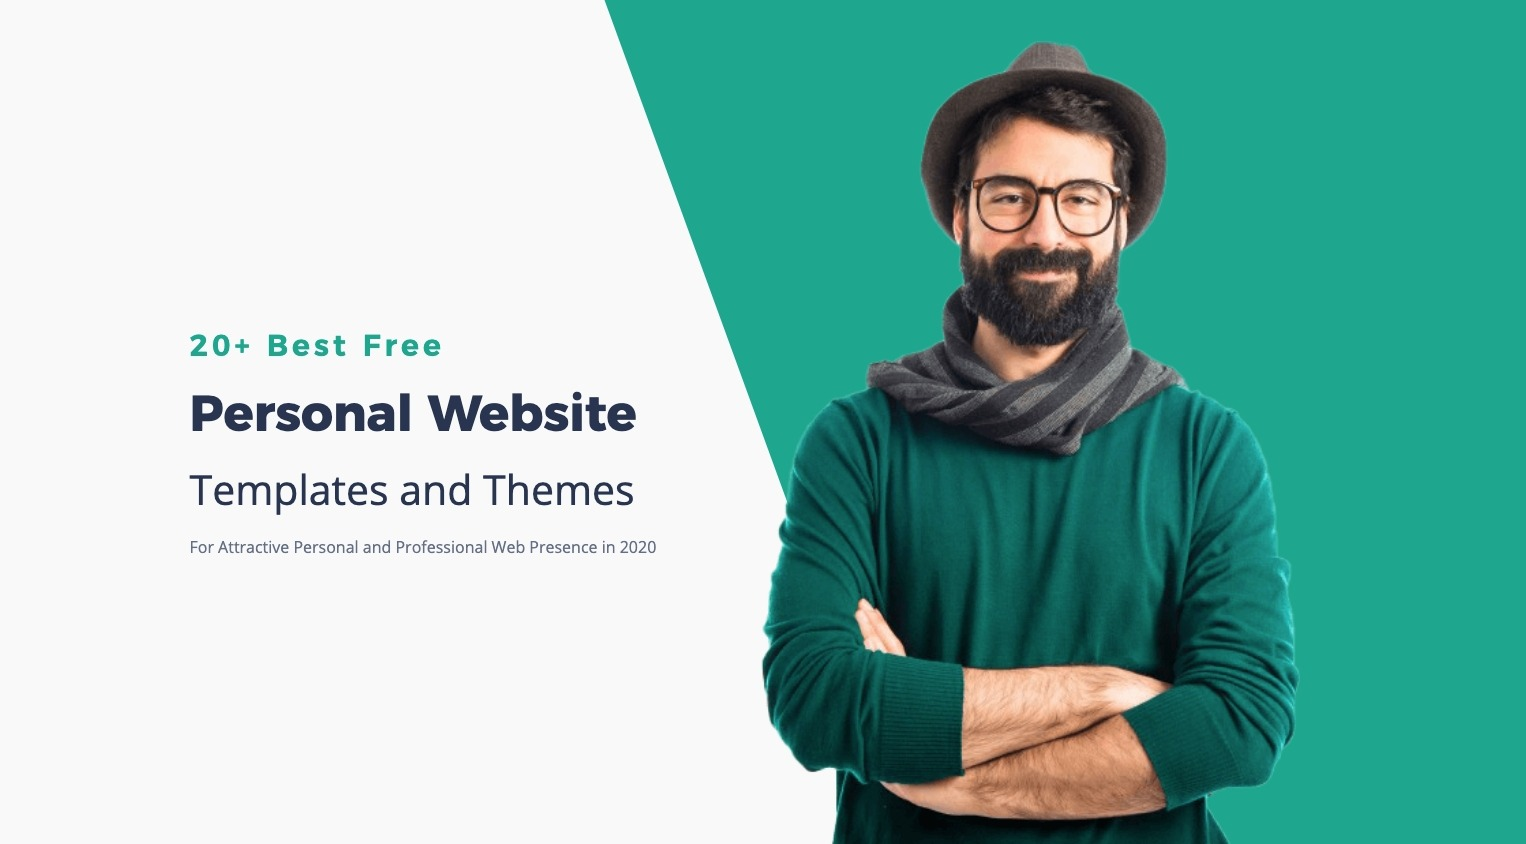 14 Free Personal Website Templates For Attractive Web Presence in 2021